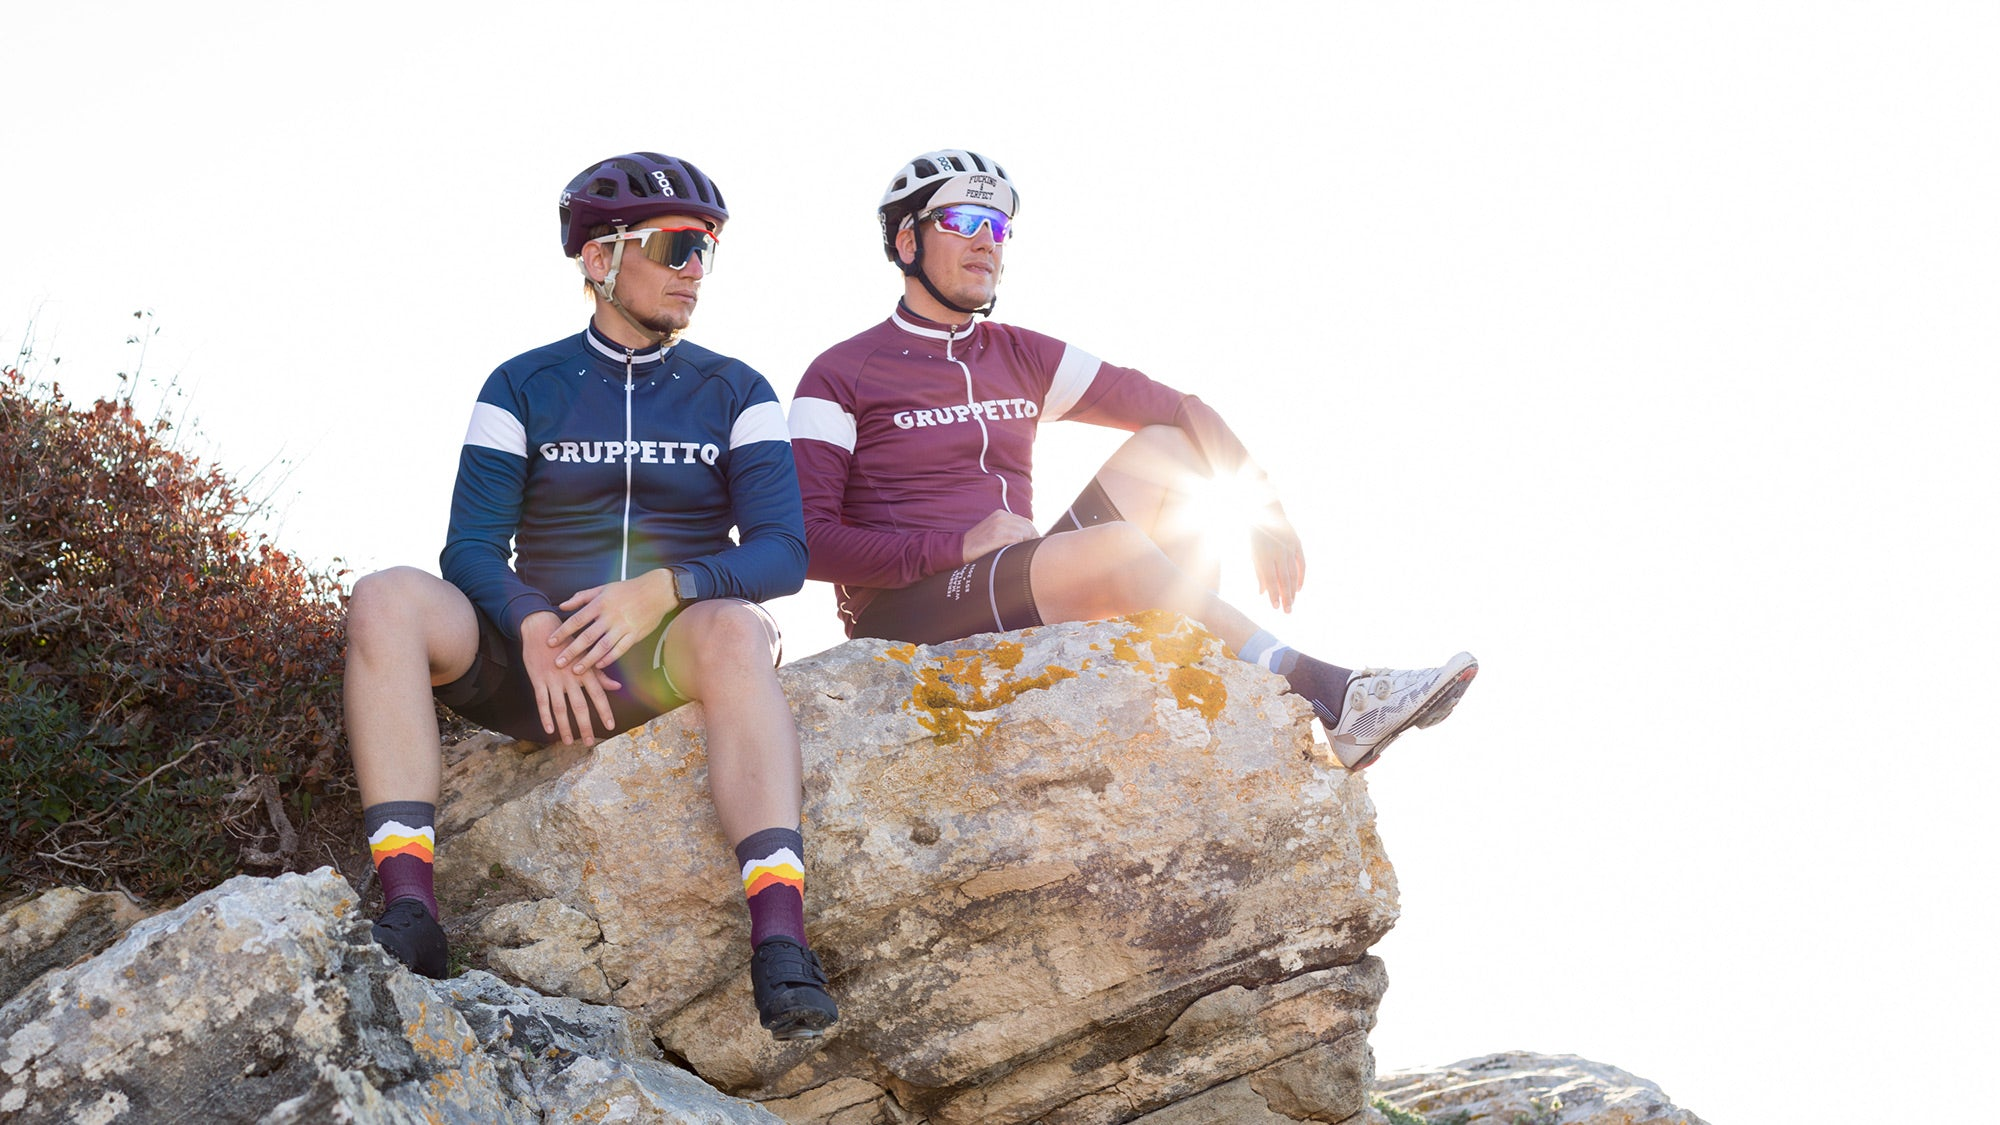 JML Gruppetto Long Jersey - Navy - Jerseys Made with Love